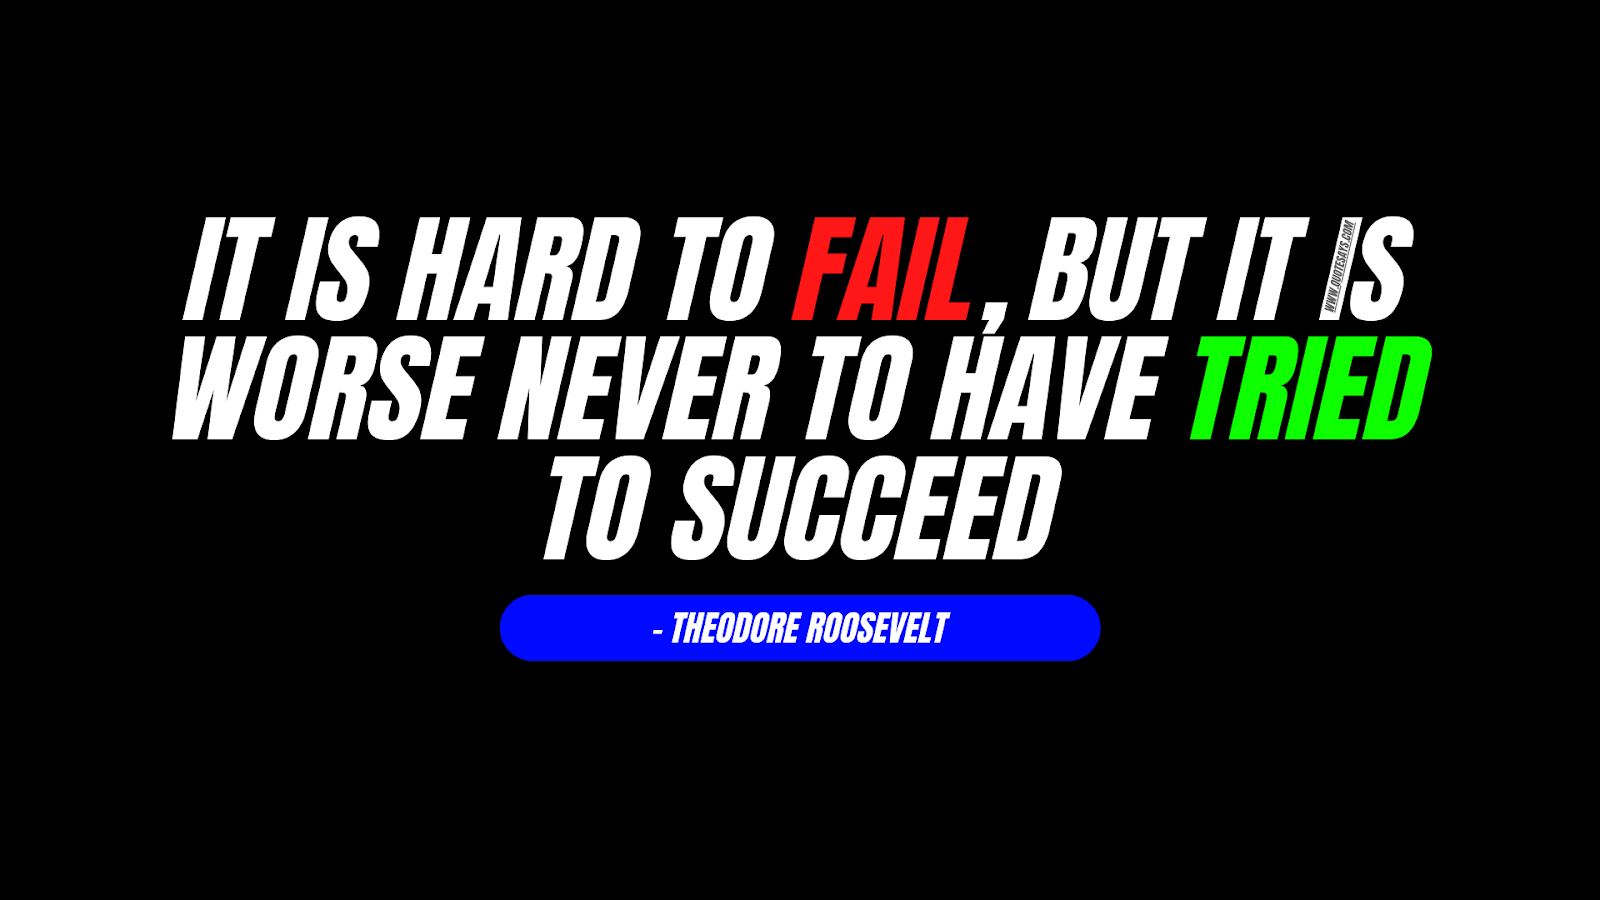 Inspirational Black Wallpapers with Quotes for Desktop